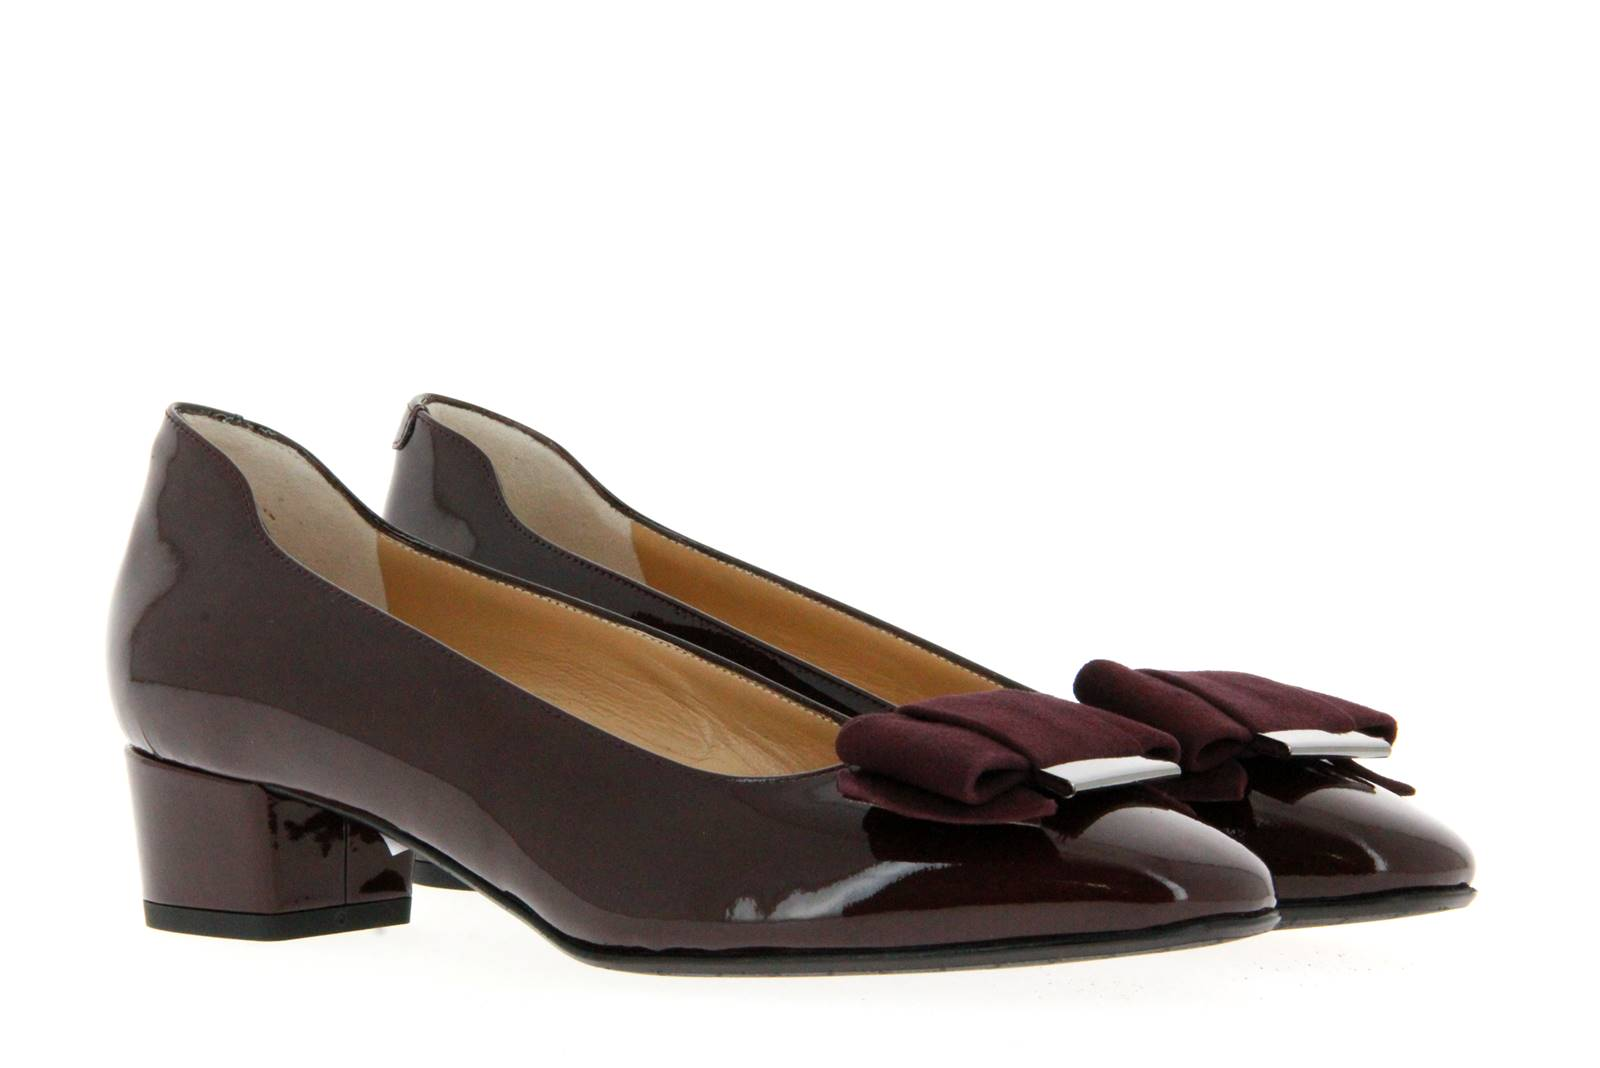 ScarpaRossa Pumps VERNICE BORDO (41)